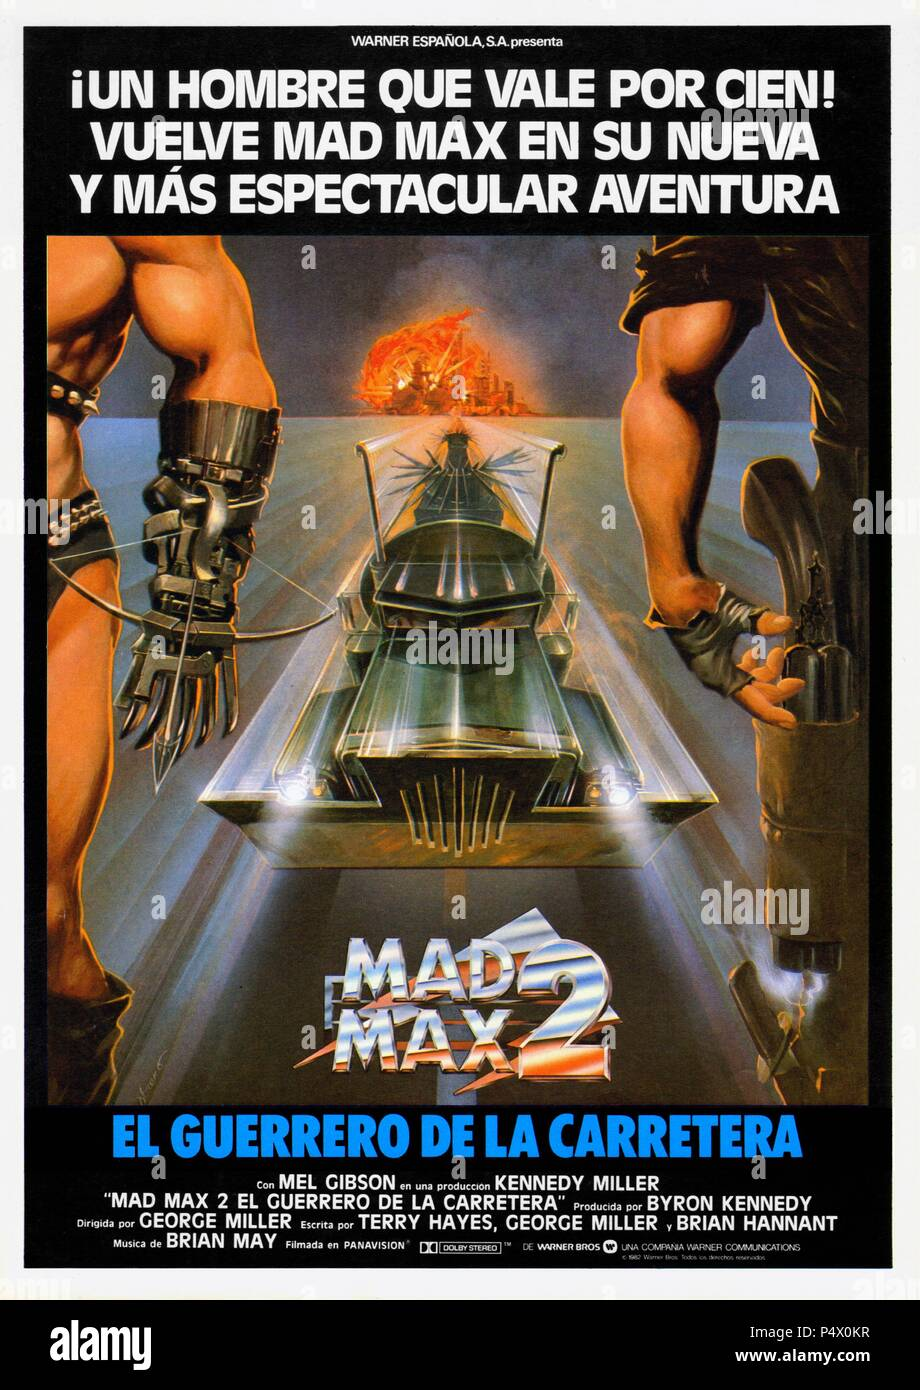 Original Film Title: THE MAD MAX II: ROAD WARRIOR.  English Title: THE MAD MAX II: ROAD WARRIOR.  Film Director: GEORGE MILLER.  Year: 1981. Credit: WARNER BROTHERS / Album Stock Photo